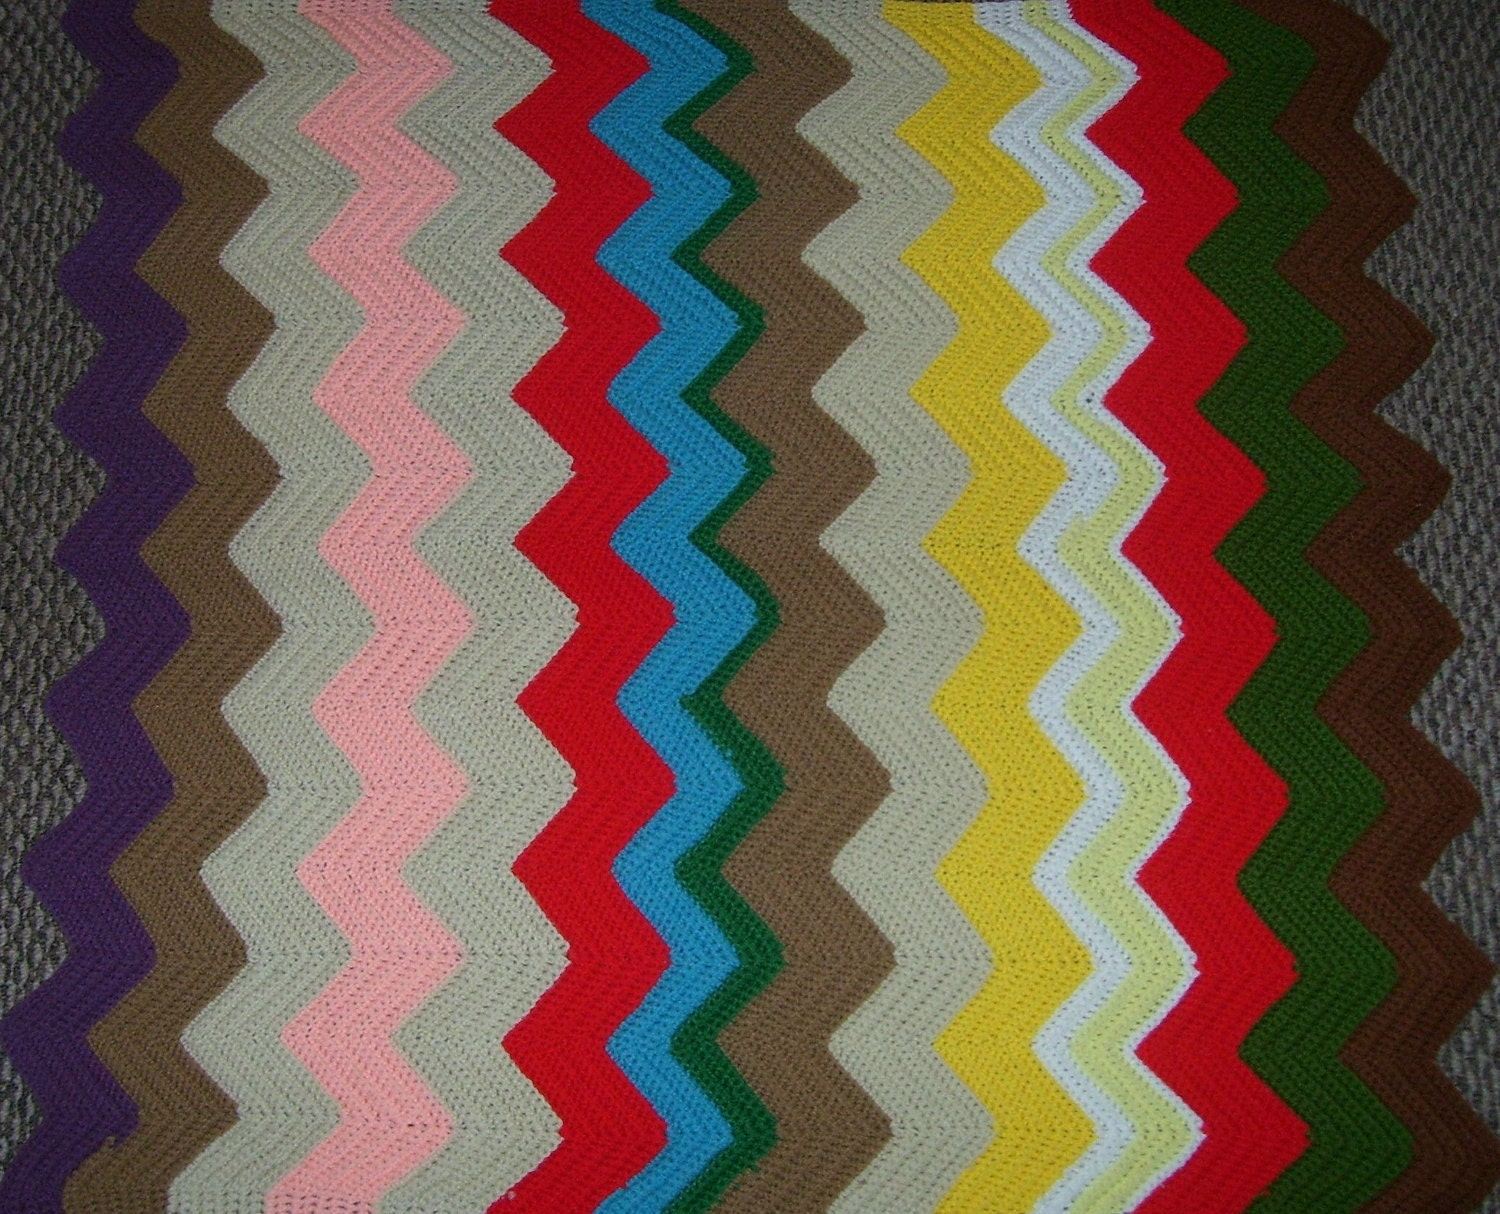 Crochet Patterns Zig Zag Blanket : ... Crochet Blanket Throw Multi Color Zig Zag Pattern Lap Blanket on Etsy